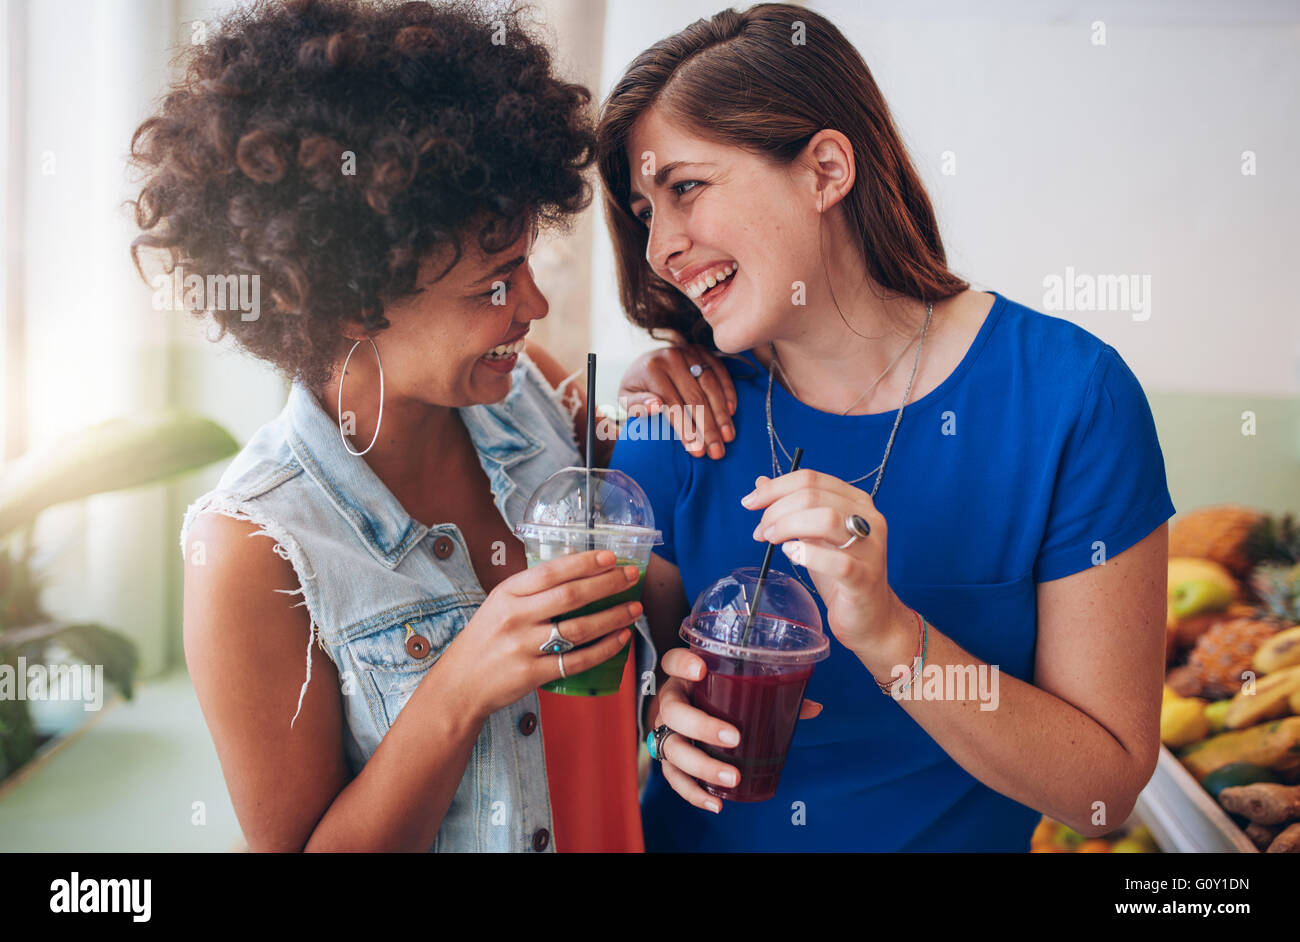 Portrait of cheerful young friends having fresh juice. Two young women at juice bar having a glass of fresh fruit - Stock Image